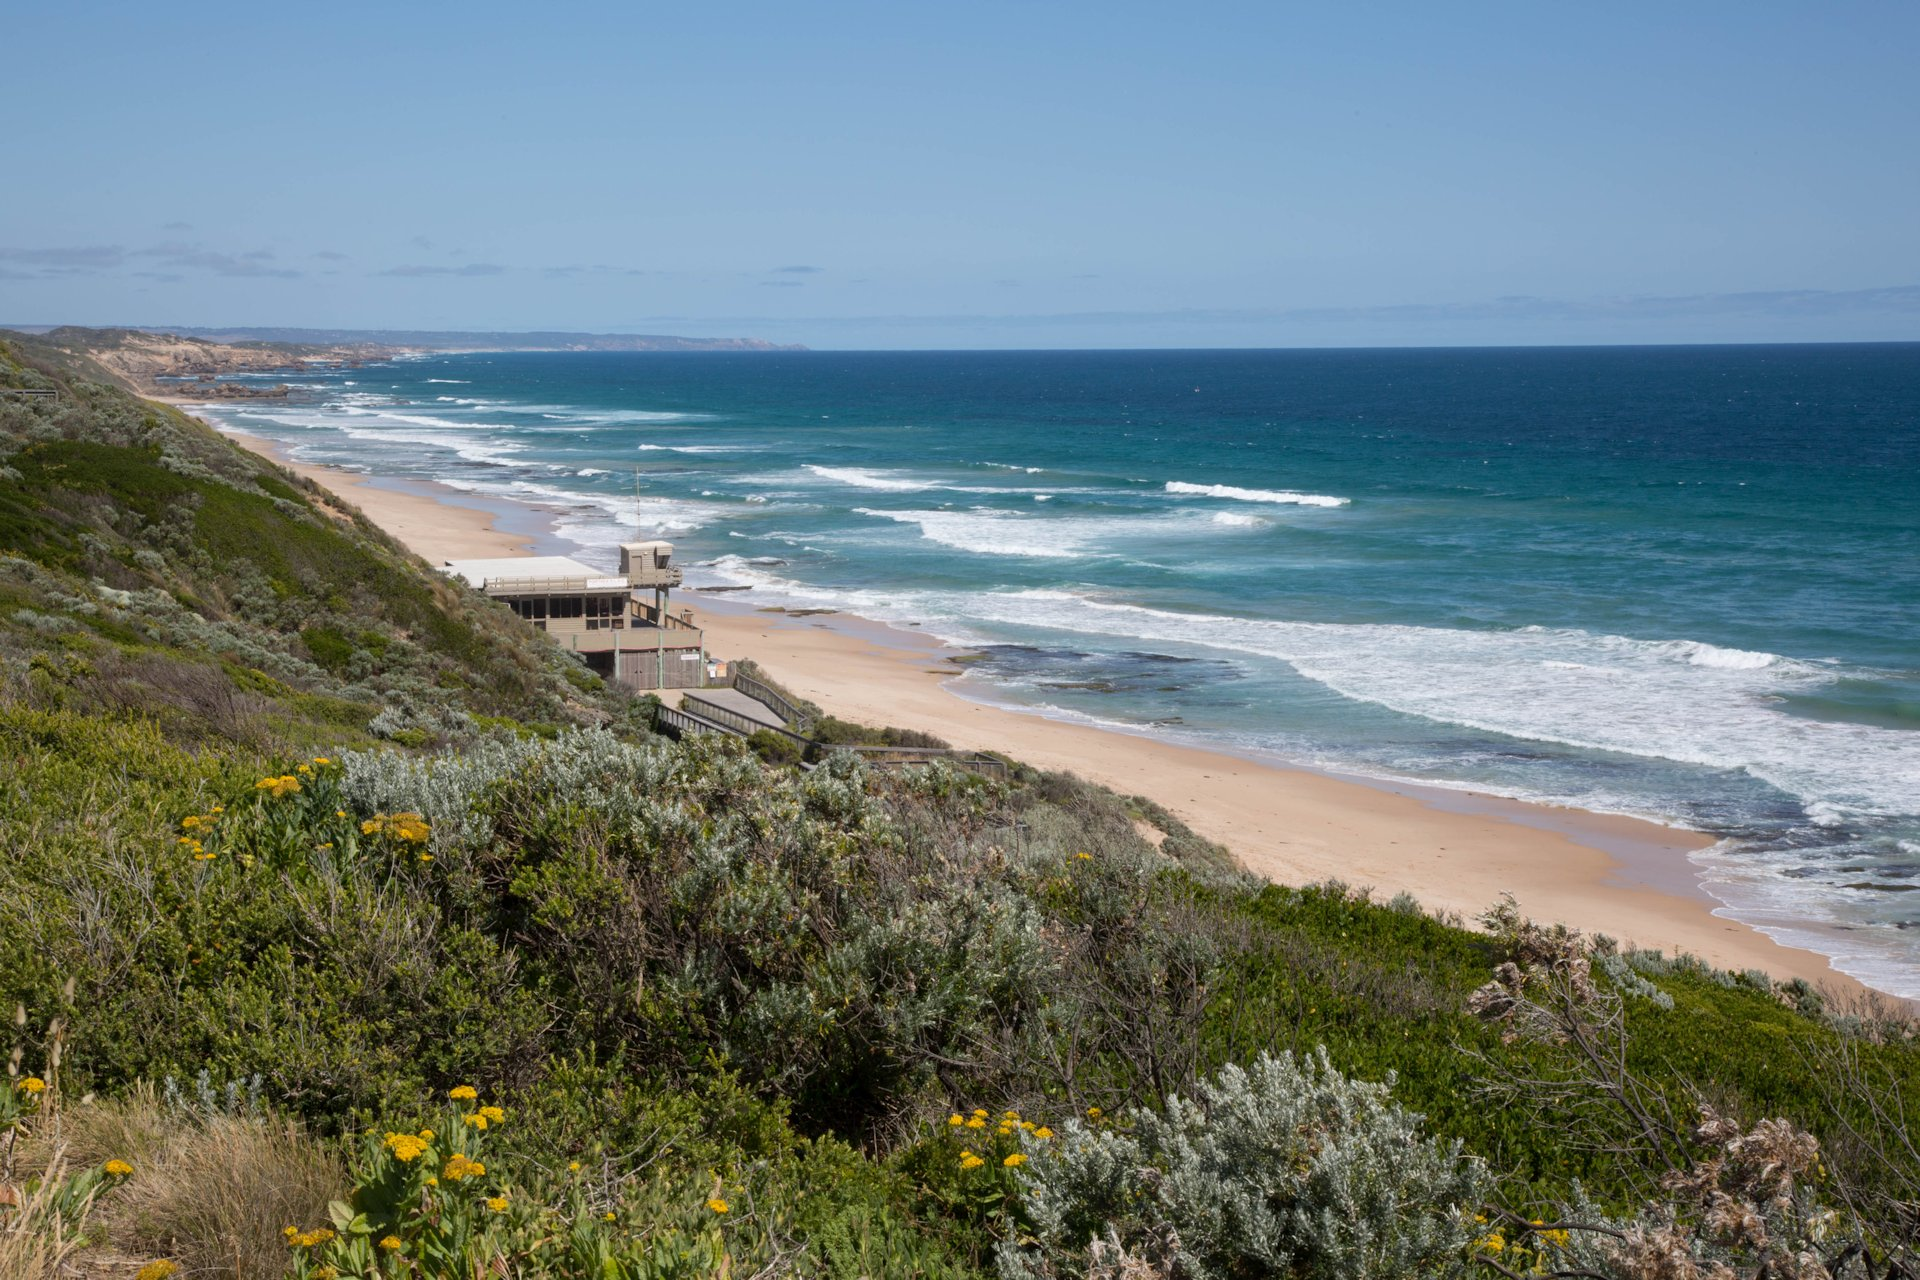 Ocean Beach, near Portsea on the Mornington Peninsula